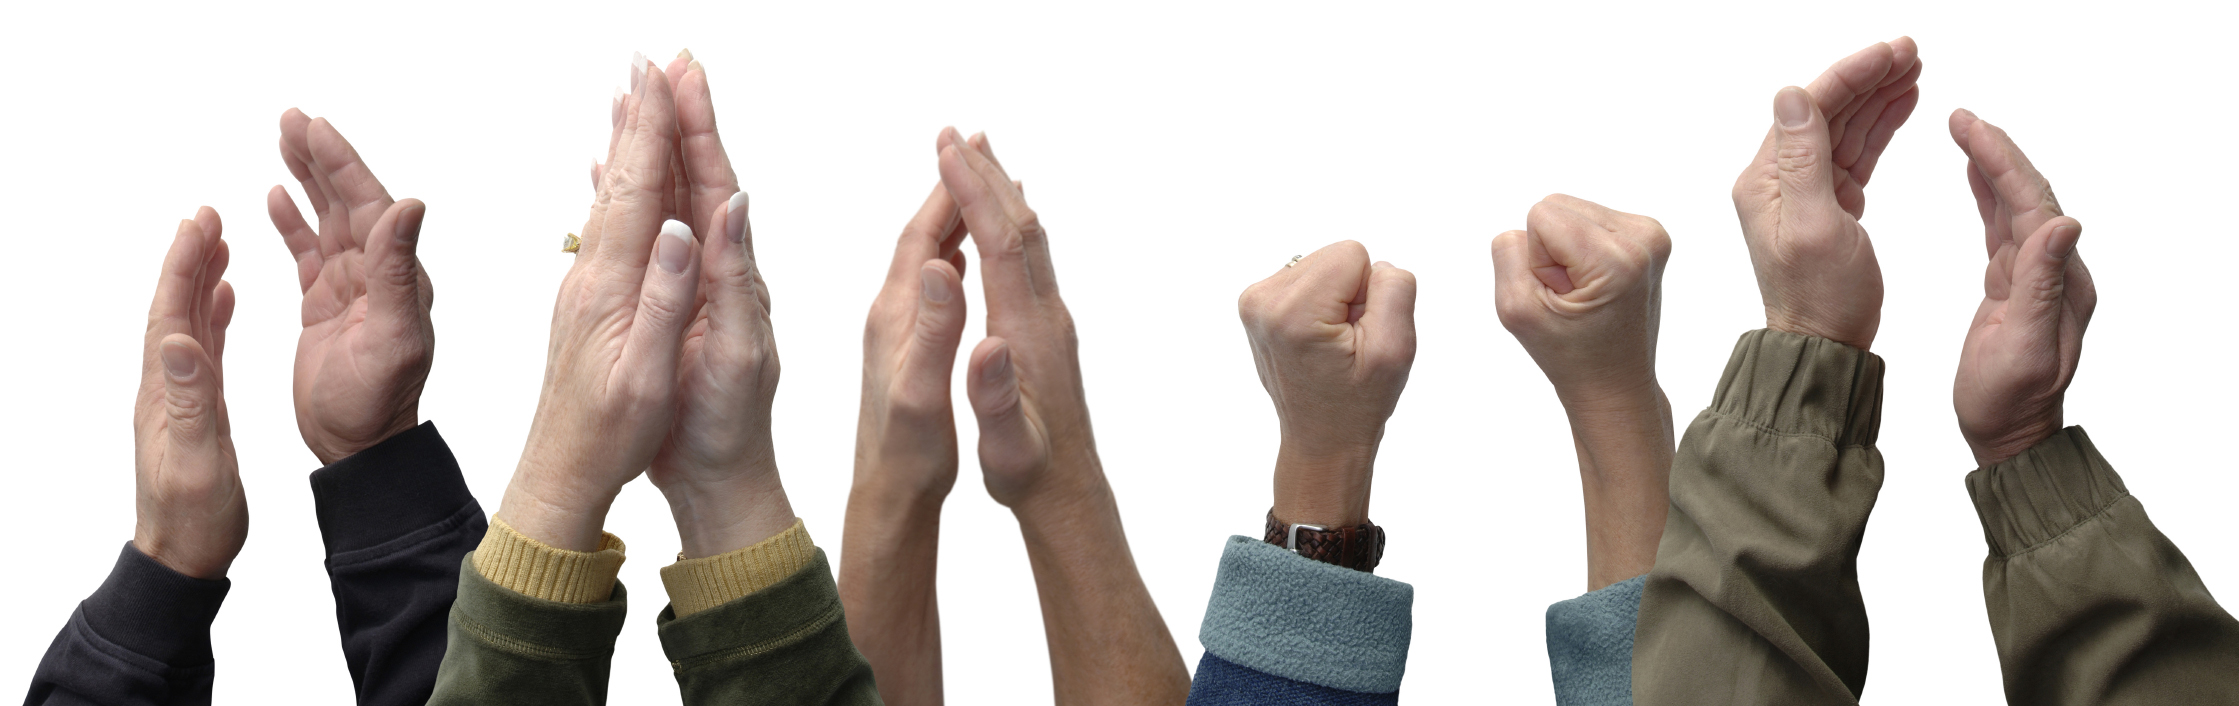 Hands Clapping PNG HD - 126611